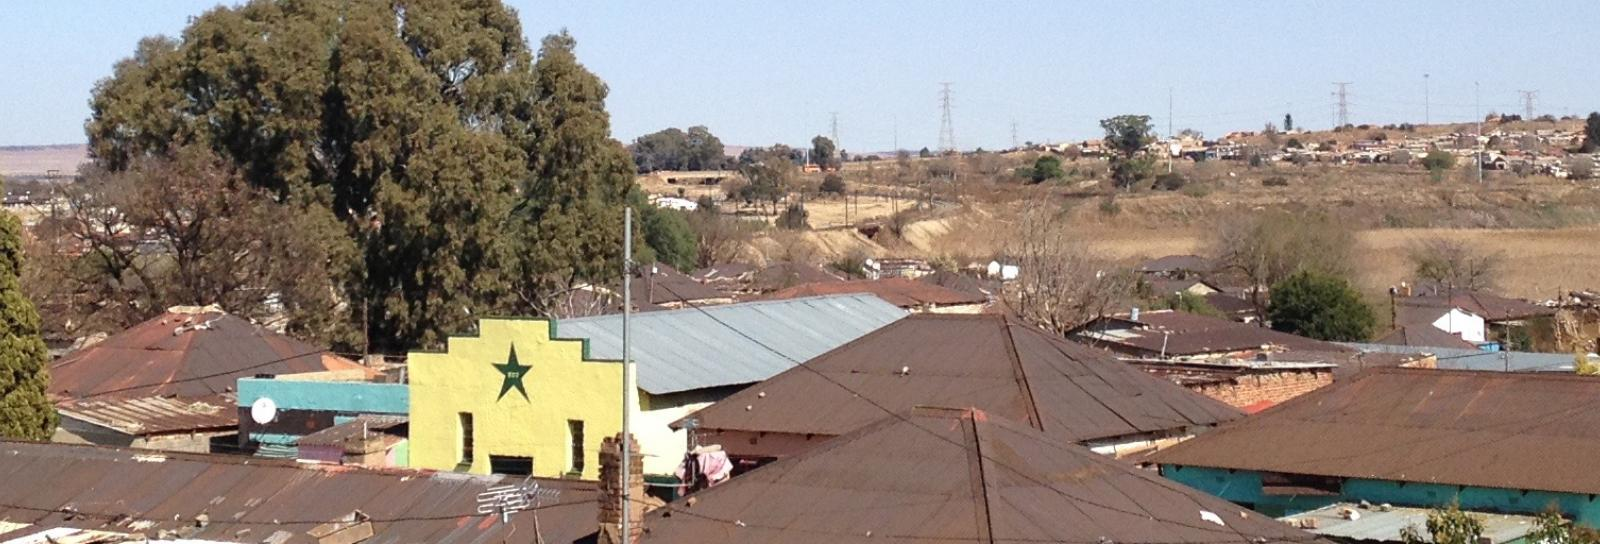 photo across the rooftops in Soweto